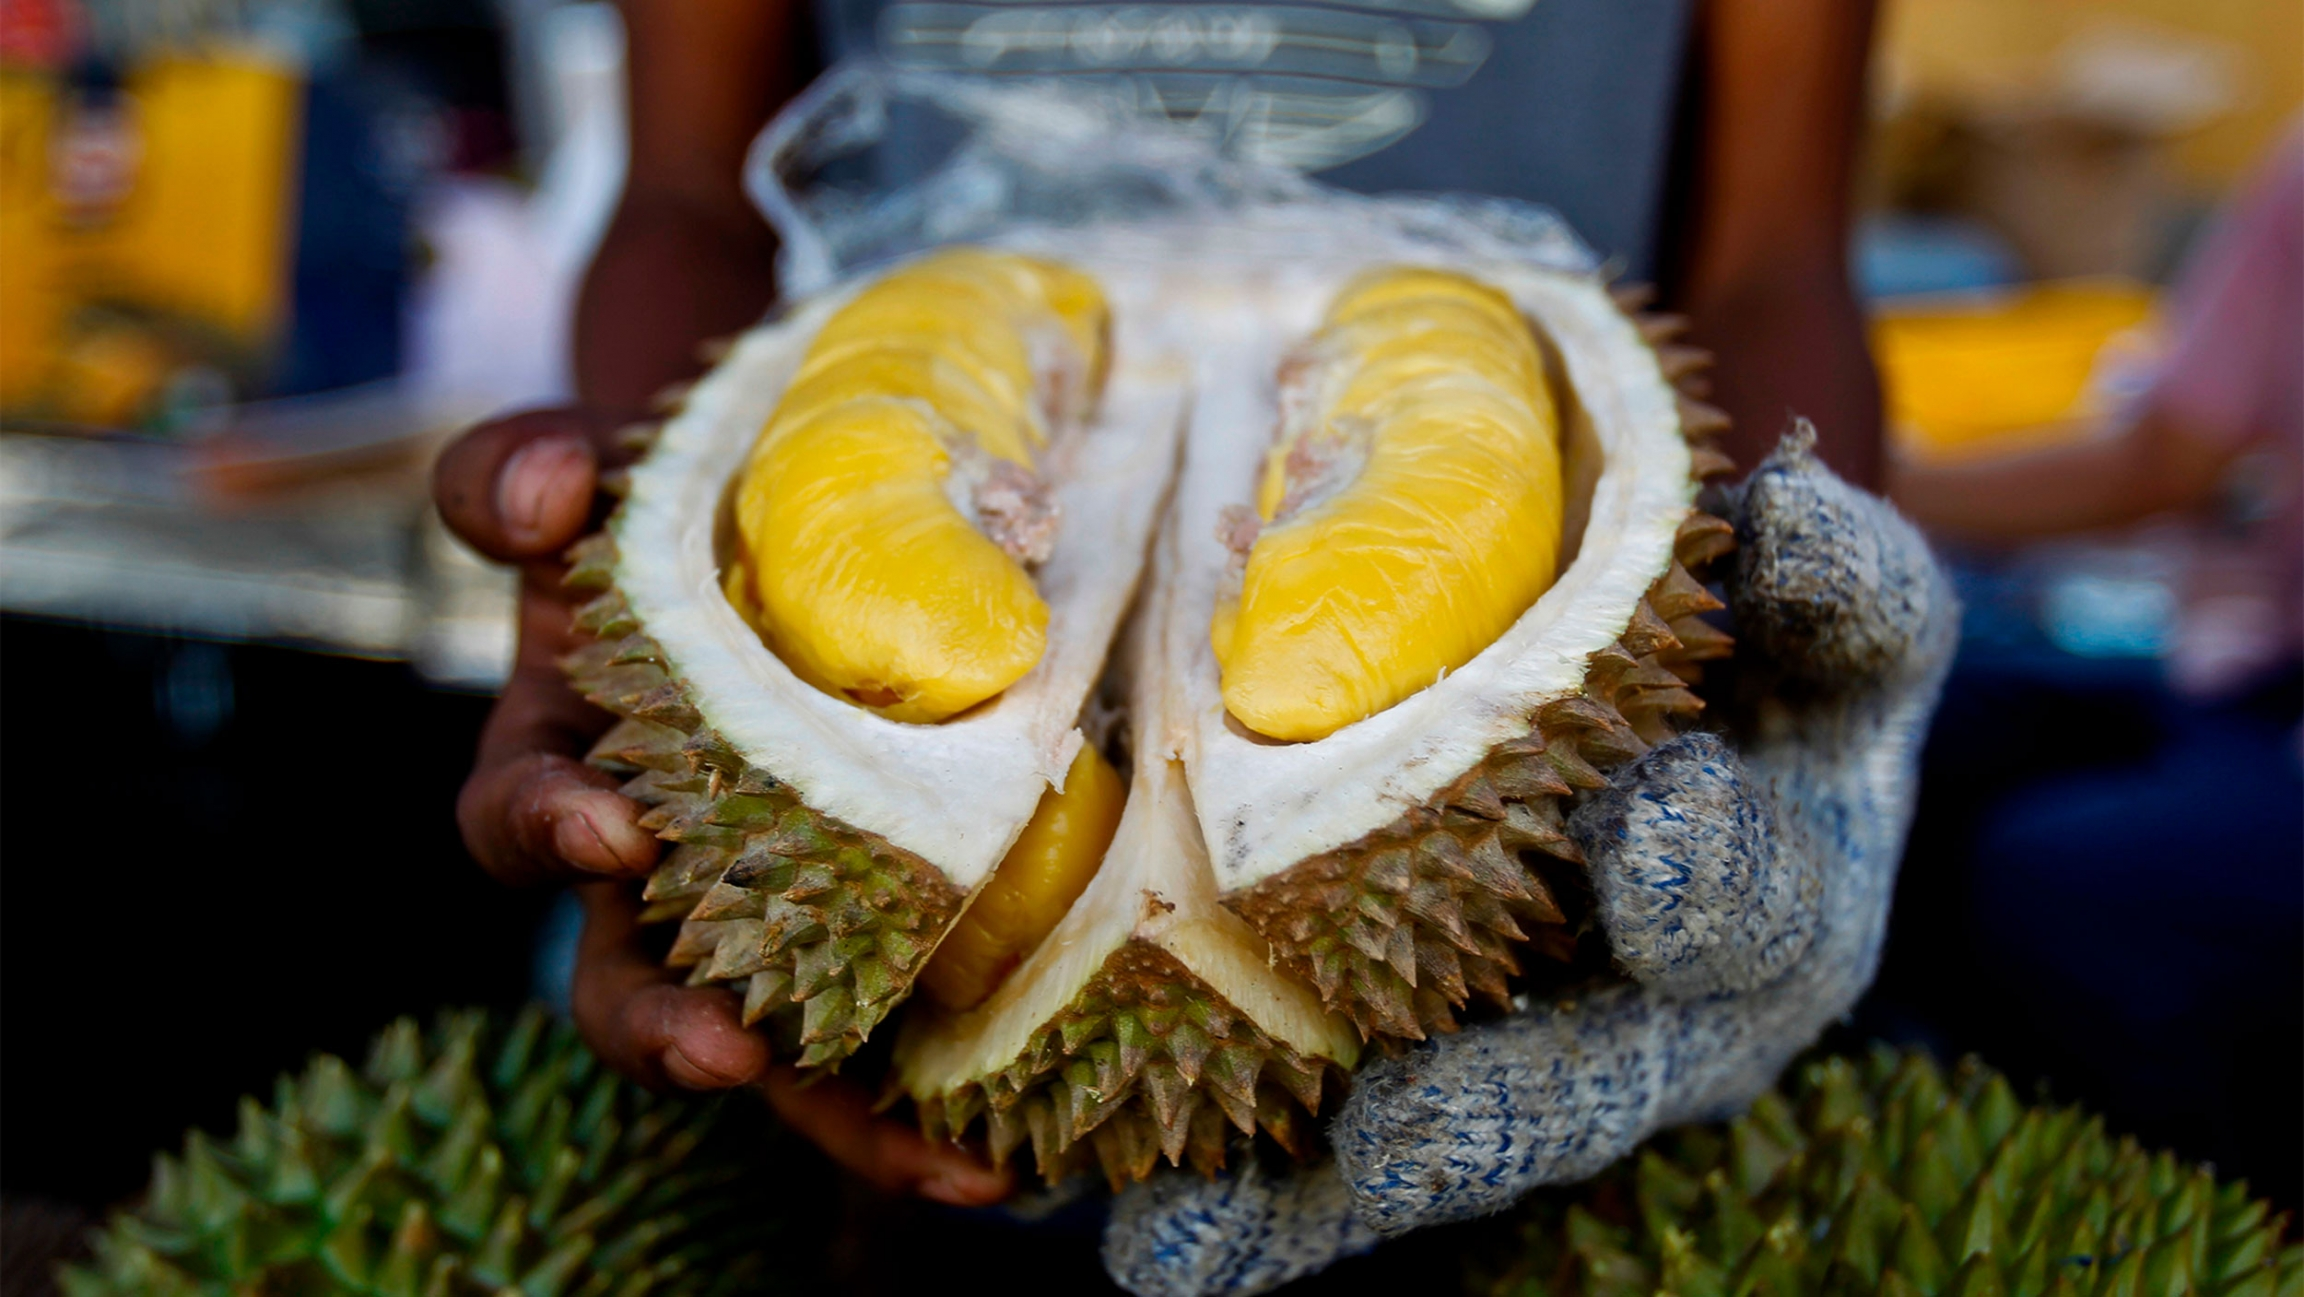 Woman wearing gloves holds out a durian fruit